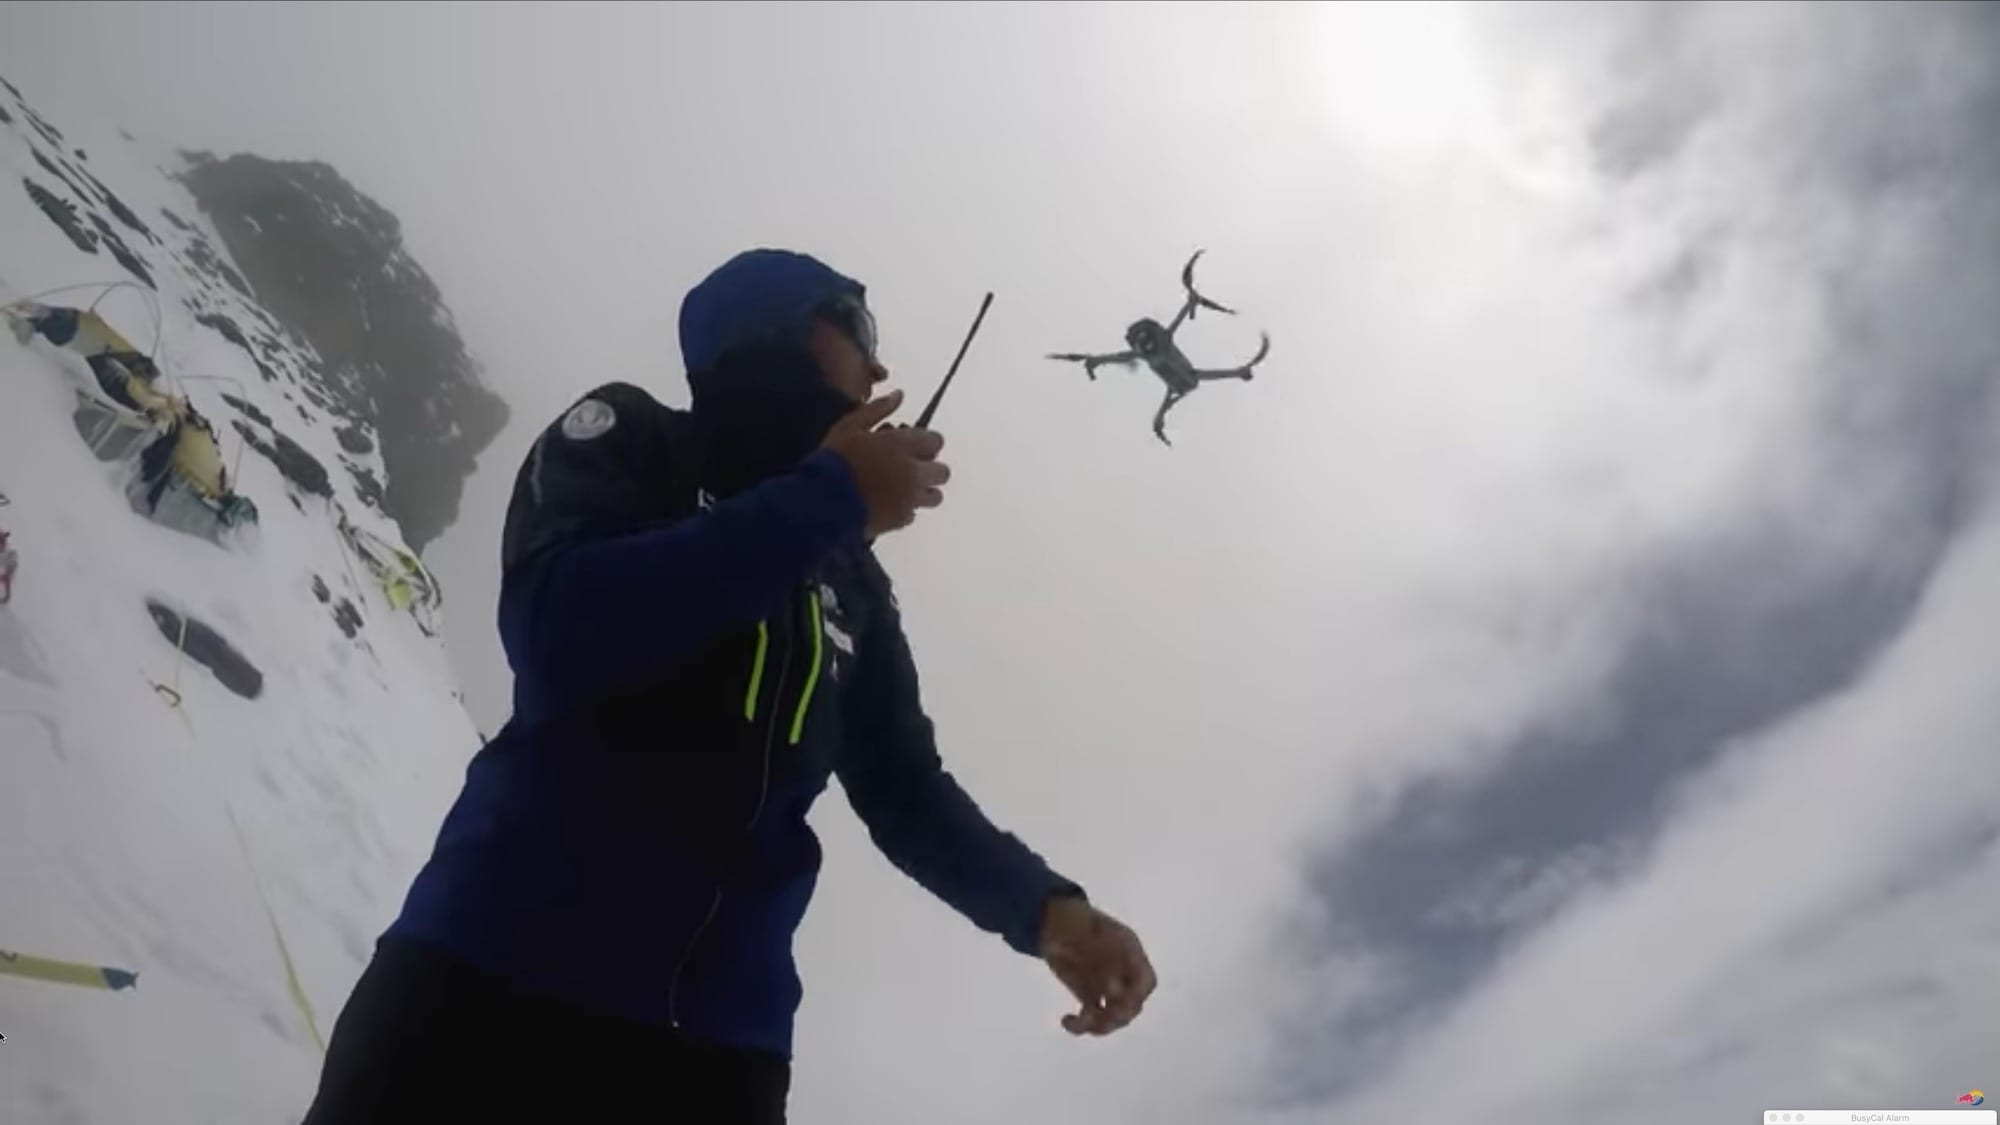 DJI Mavic Pro explores K2 mountain, delivers medicine and rescues climber from Broad Peak